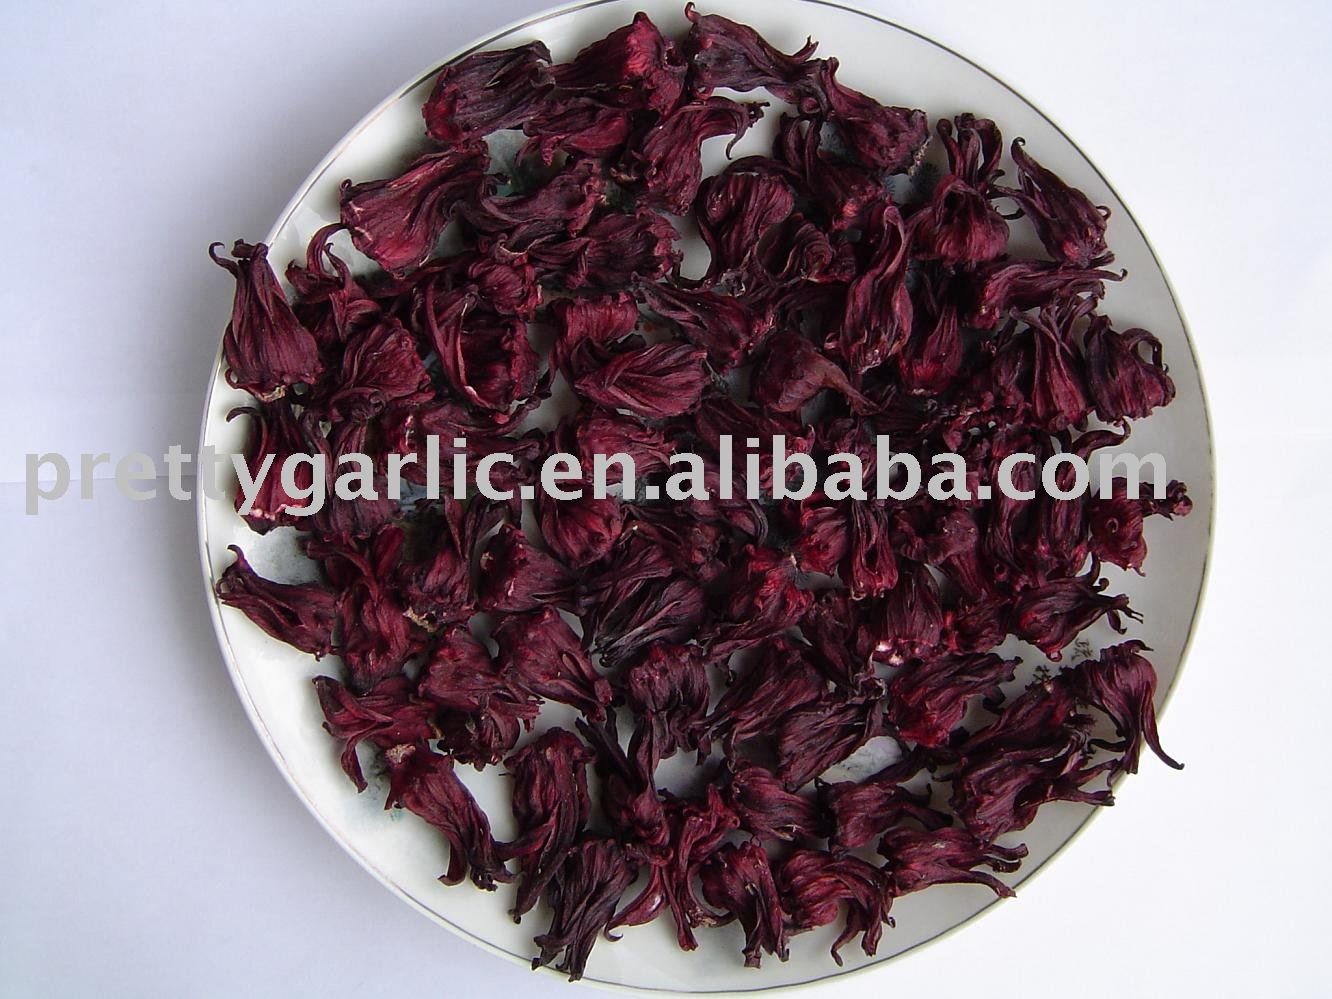 Dried Hibiscus Flowers Productschina Dried Hibiscus Flowers Supplier